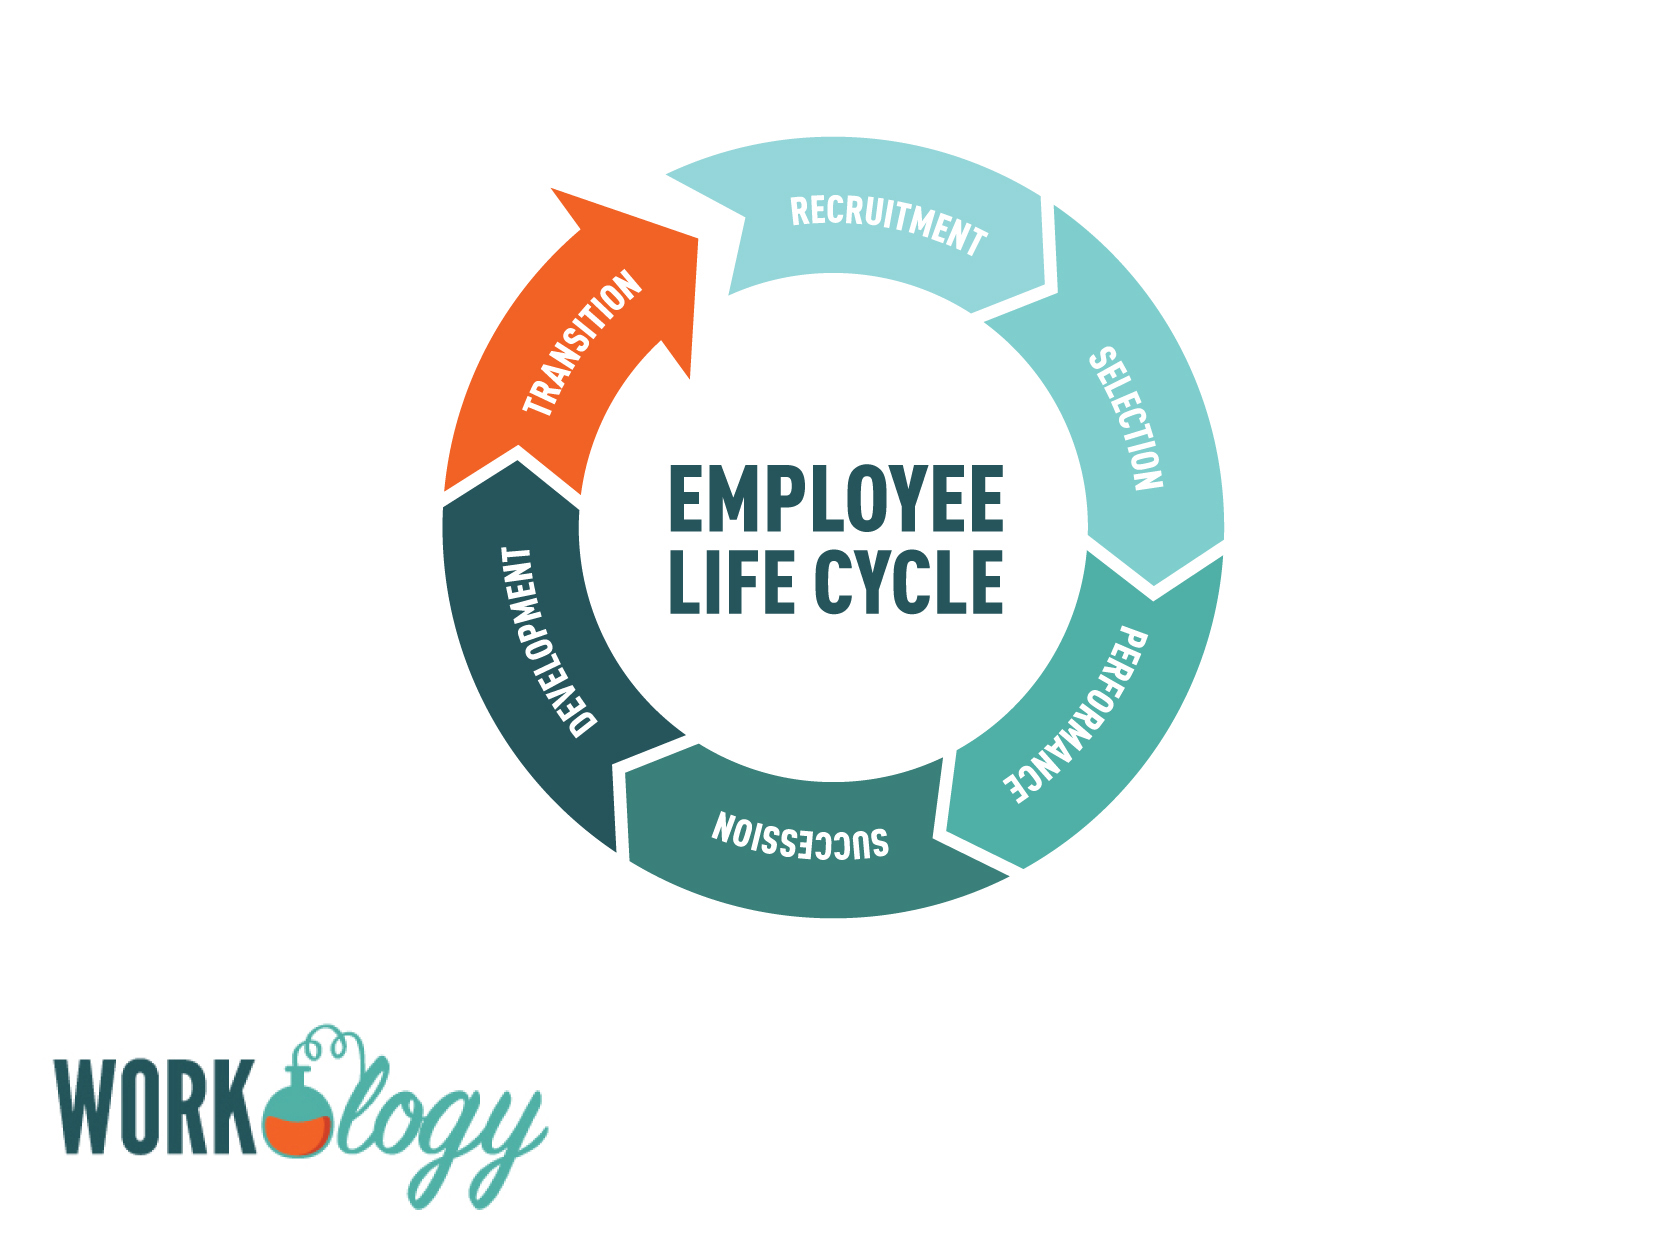 employee life cycle diagram electrical 2 way switch wiring why internet sourcing isnt your recruiting savior workology